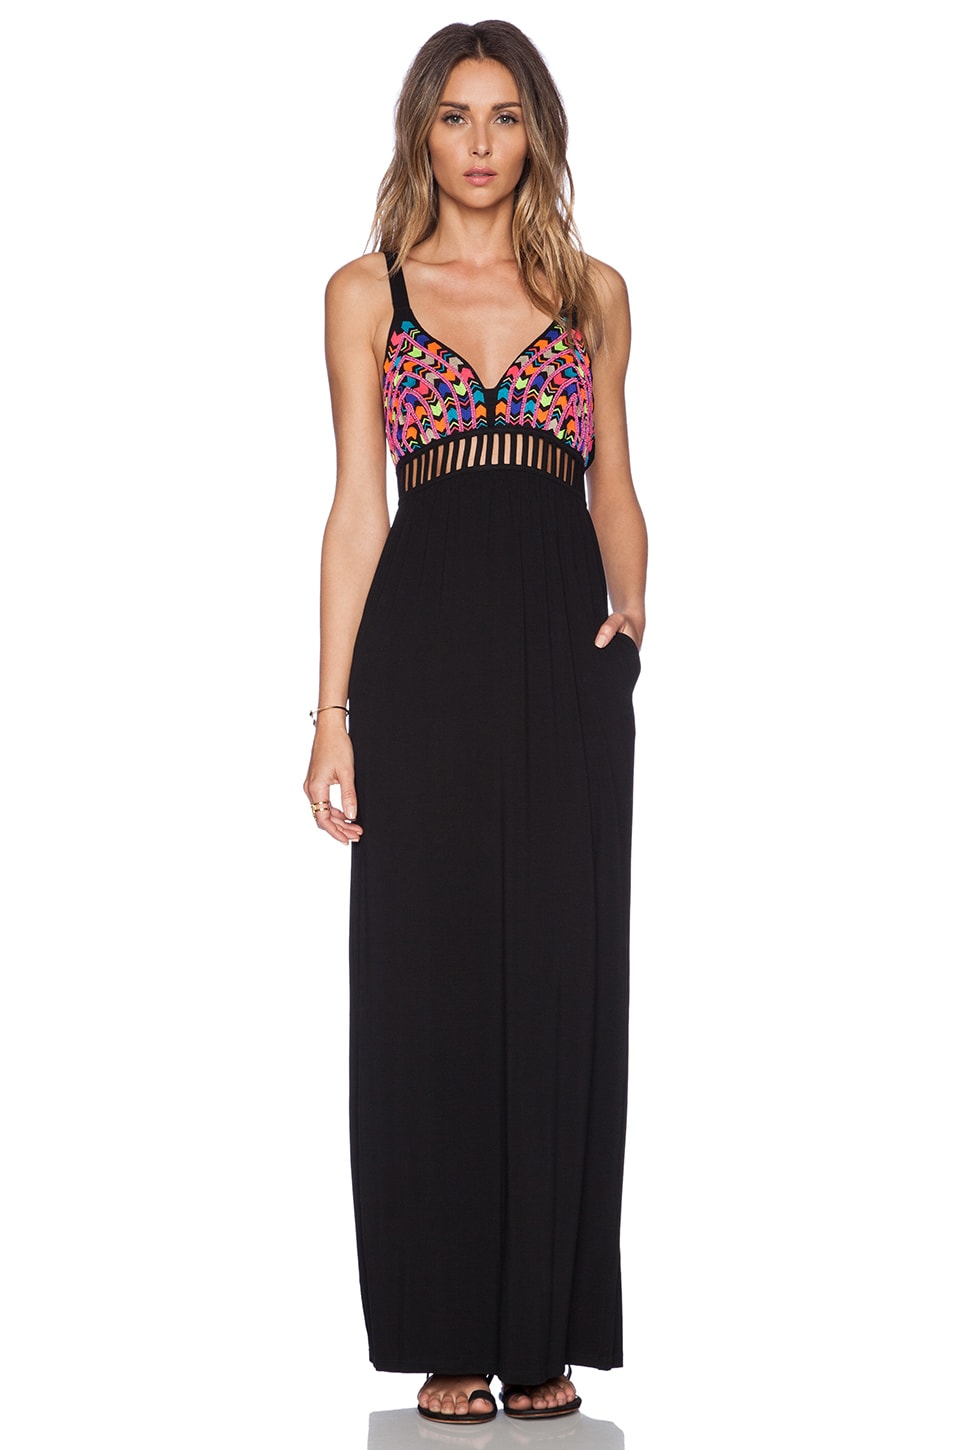 6 SHORE ROAD Ganges Beaded Ladder Maxi Dress in Black Rock